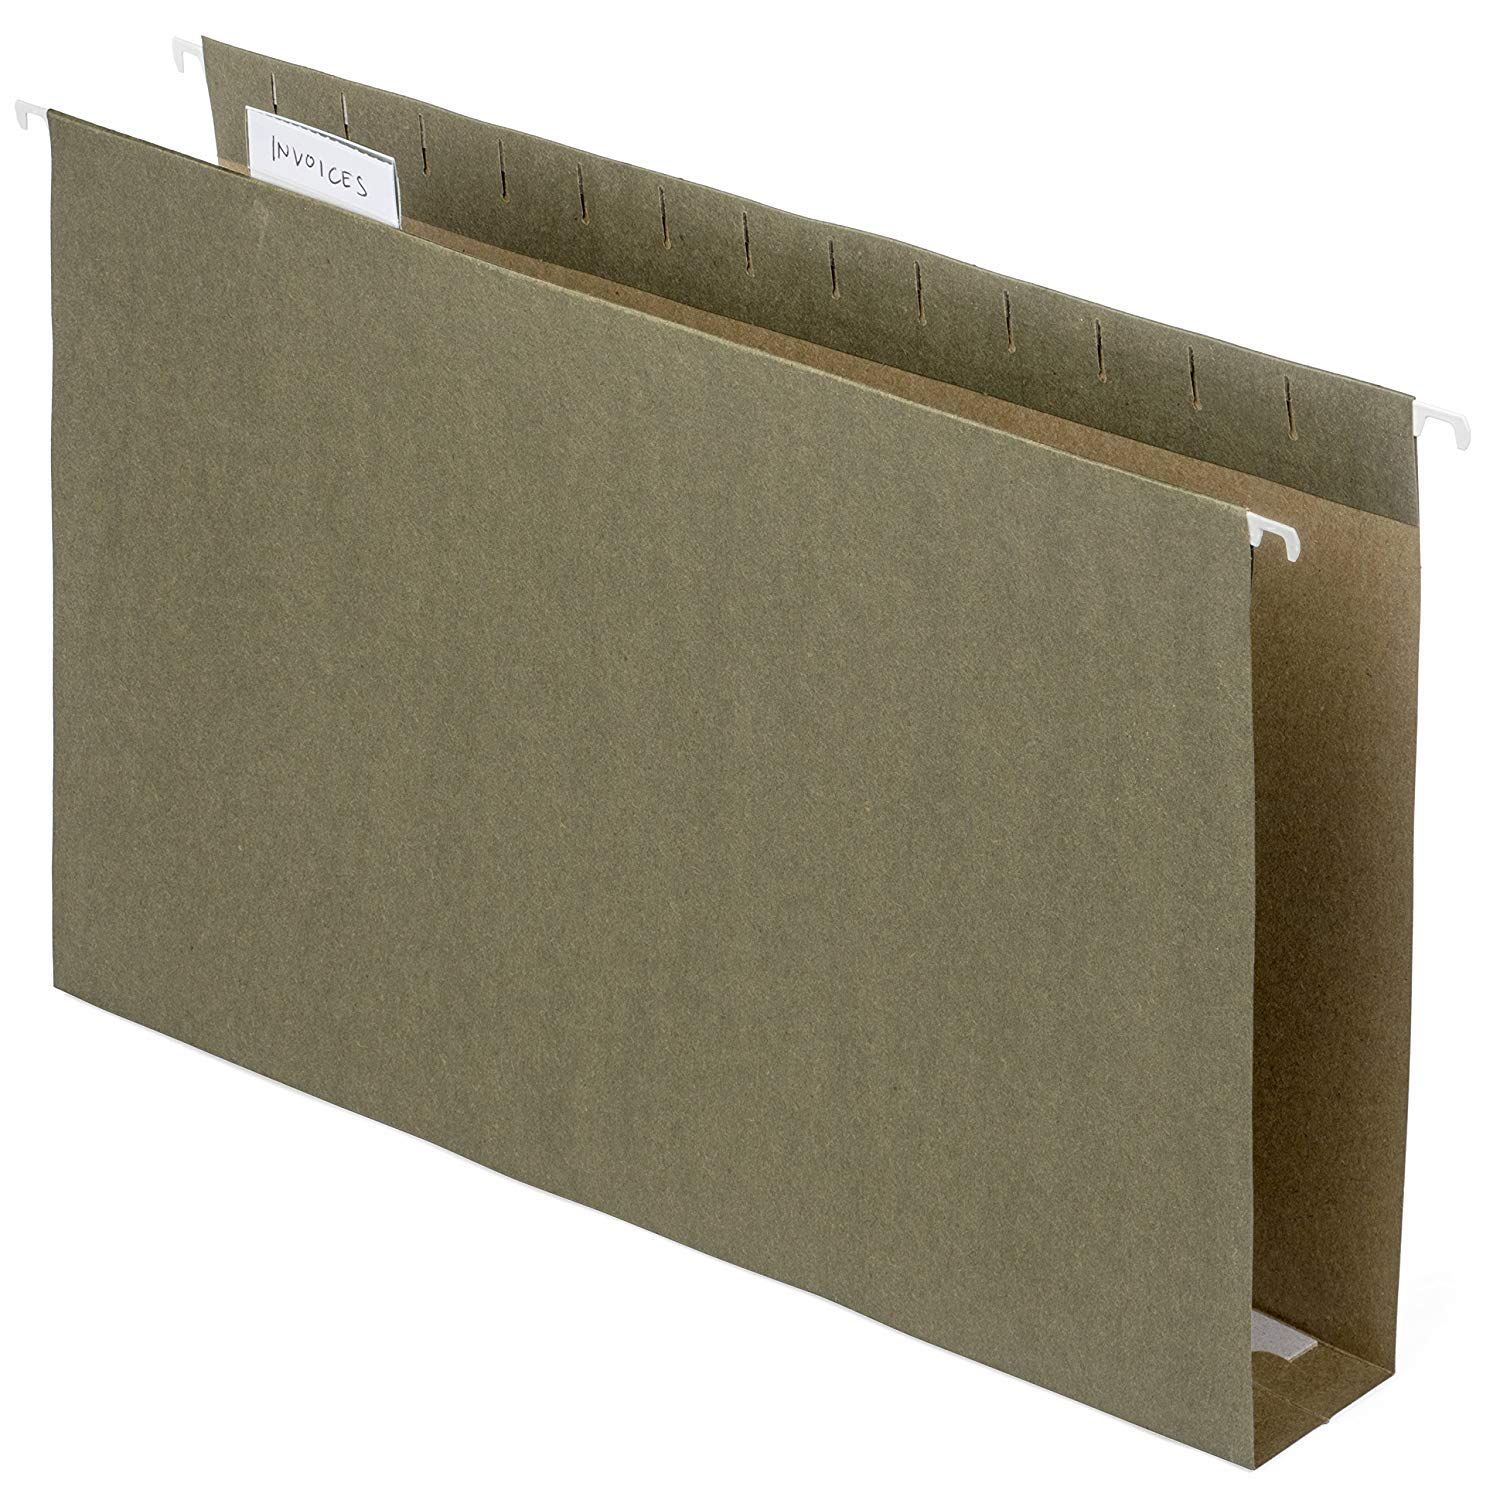 Blue Summit Supplies 3 Ring Binder Dividers with Reinforced Edge (50 Pack)